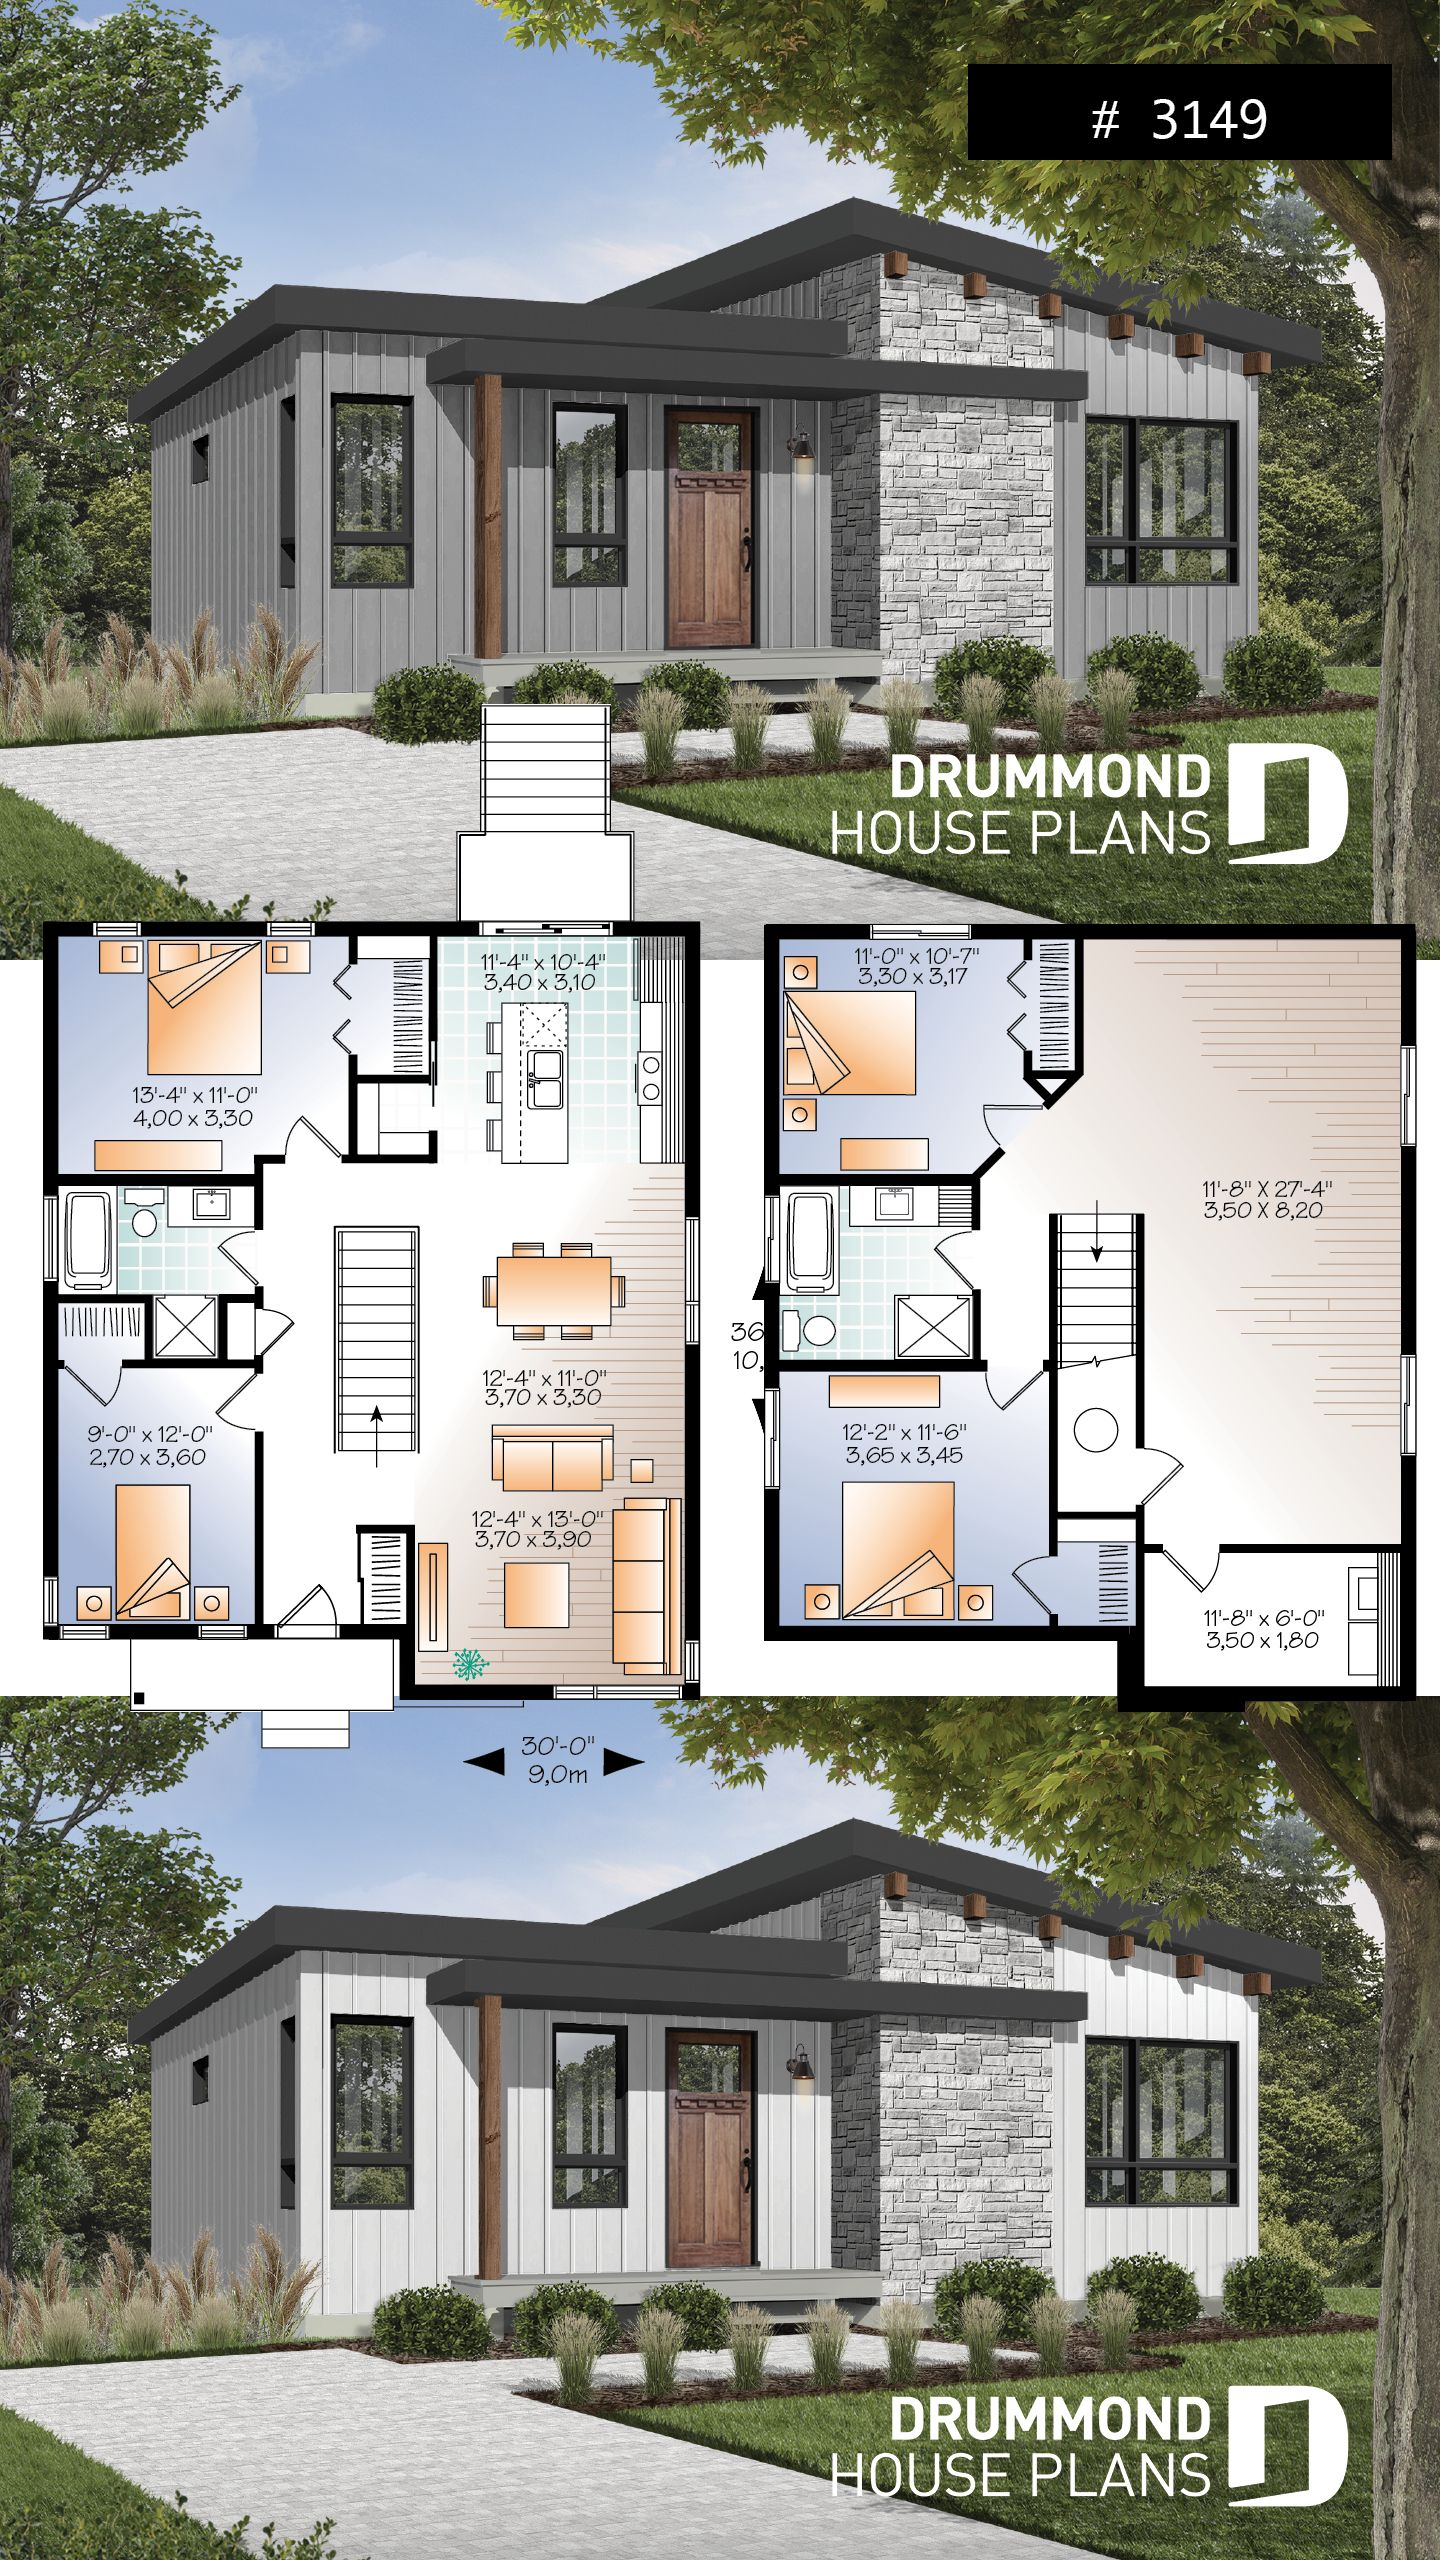 Discover The Plan 3149 Sparrow Which Will Please You For Its 2 3 4 Bedrooms And For Its Modern Rustic Styles House Plans Sims House Plans Modern House Plan